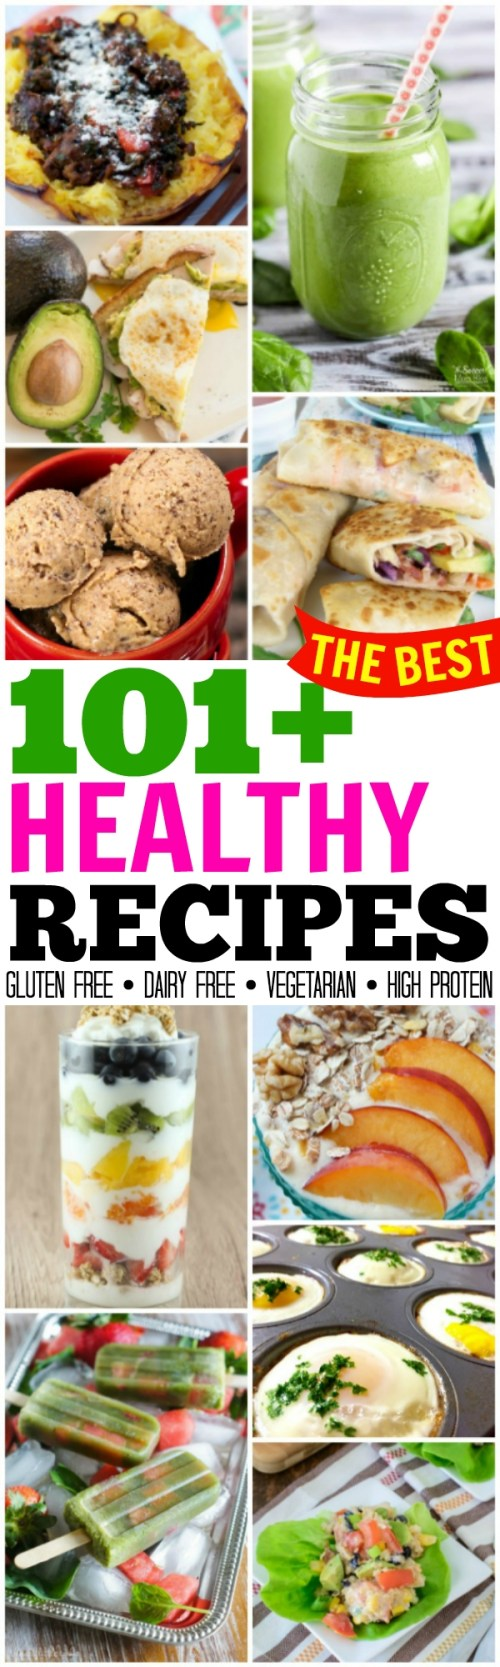 TONS of amazing options in this collection of 101+ Healthy Recipes to feel better and lose weight! Gluten free, dairy free, high protein, vegetarian & more!